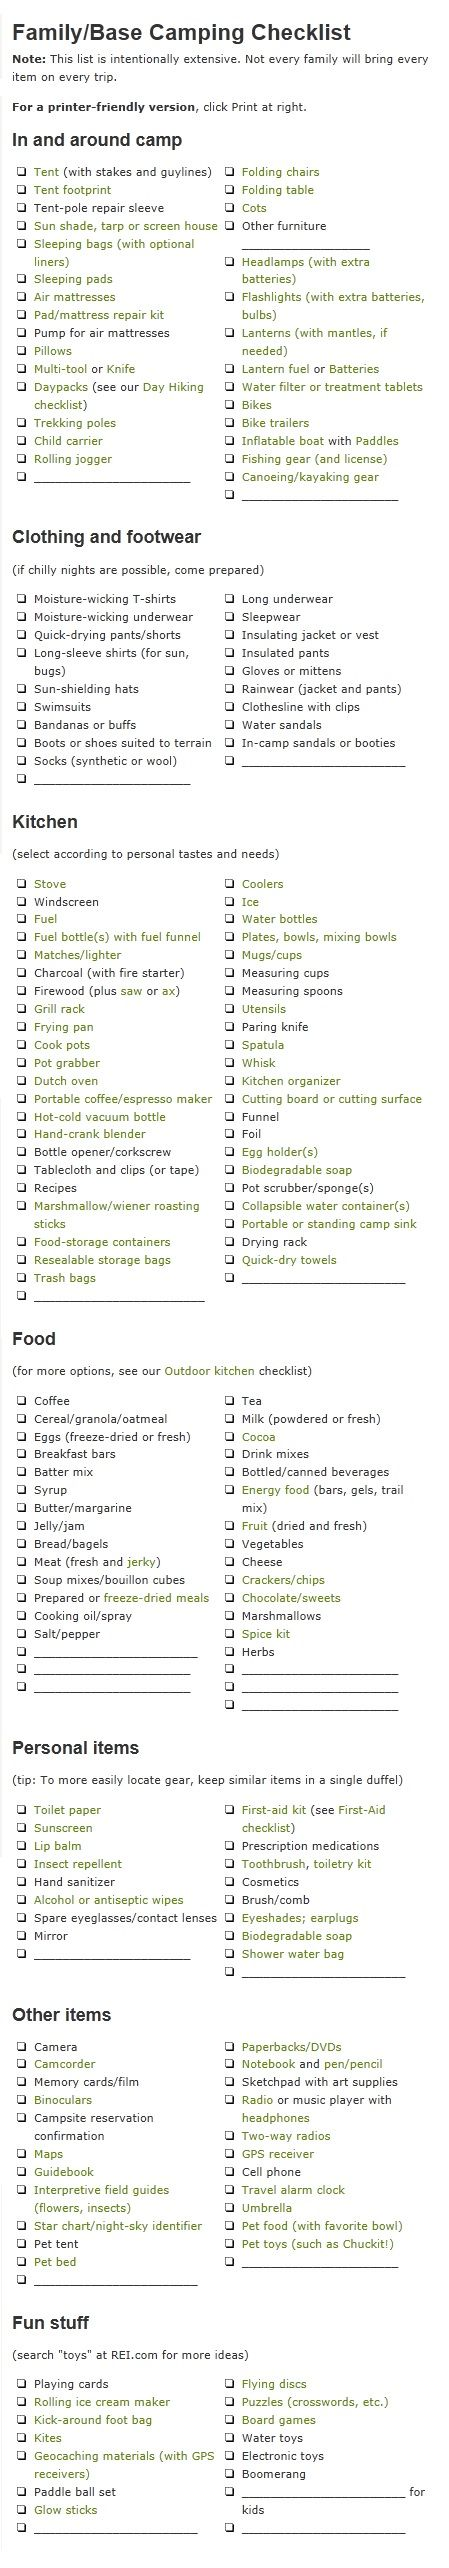 Camping Checklist from REI list for car campers is intentionally comprehensive so you don't forget anything important. Note: Not every camping party will bring every item.